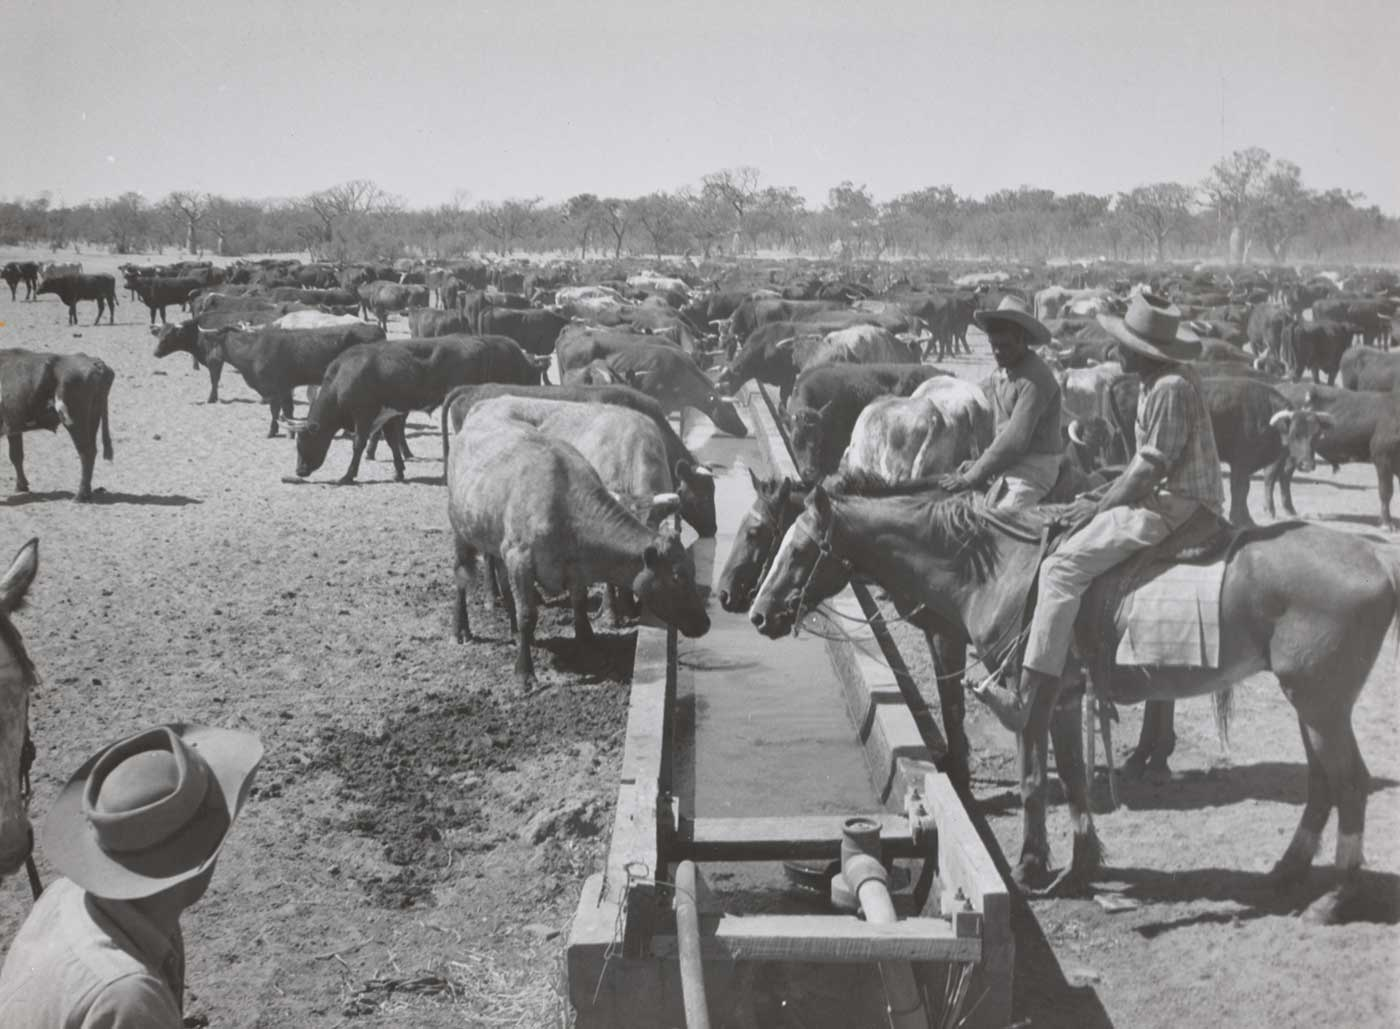 Black and white photograph showing two Aboriginal stockmen on horses. The horses drink from a long water trough, where many cattle are also drinking and milling about. - click to view larger image